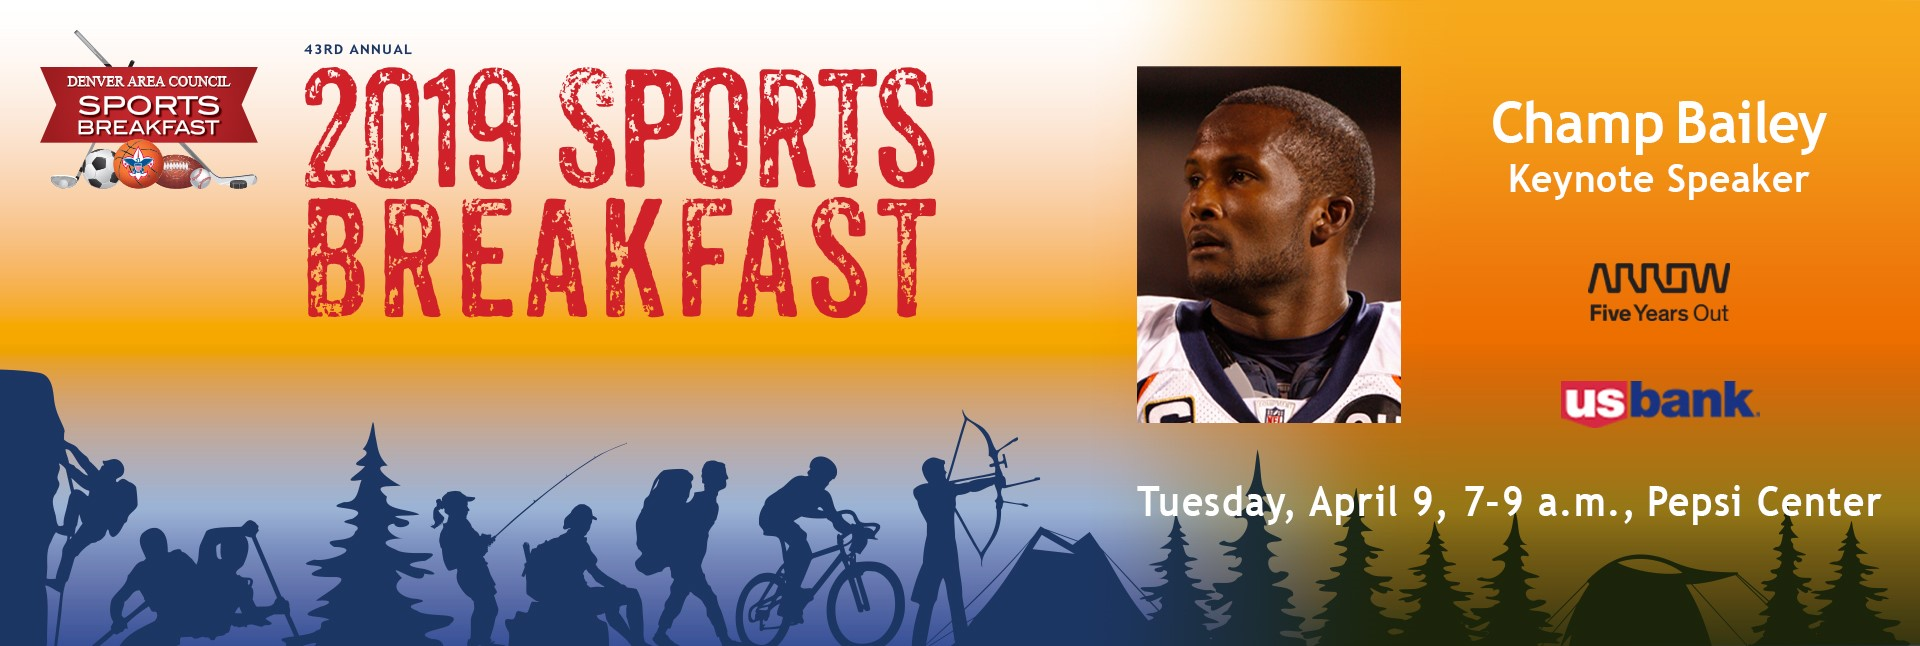 2019 Sports Breakfast with Champ Bailey